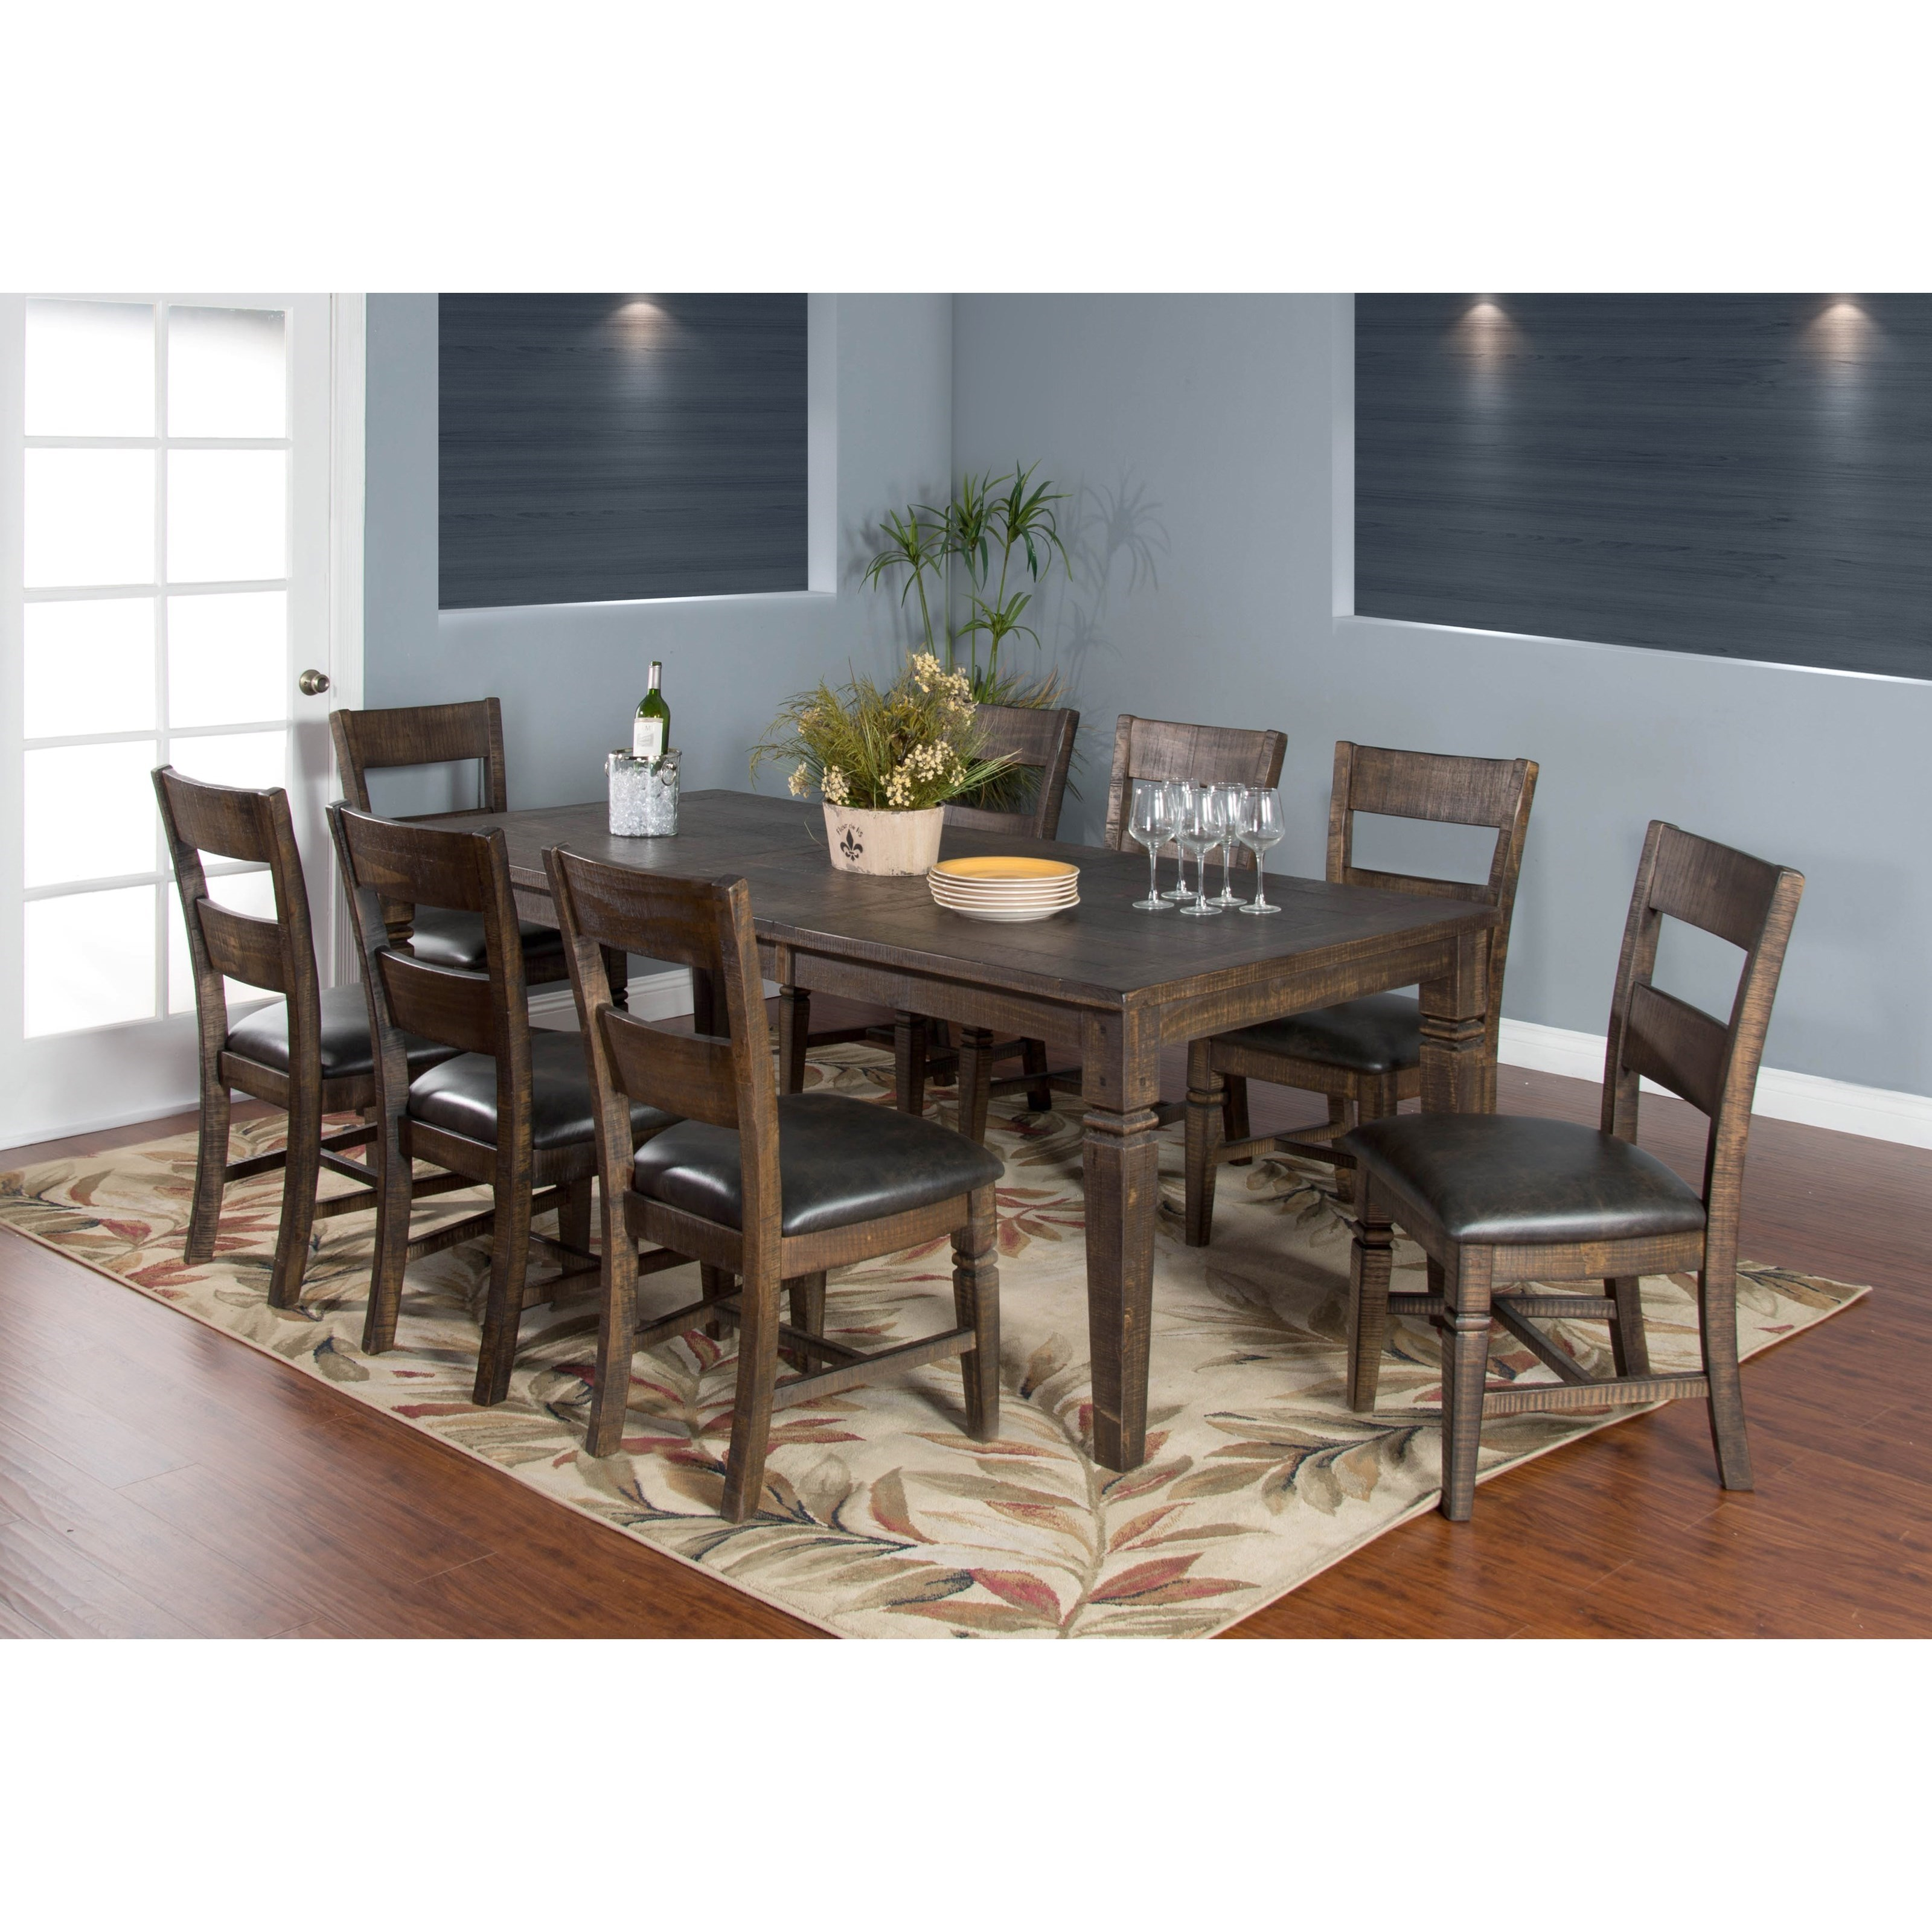 Sunny Designs Homestead 2 Dining Table Set for Eight ...